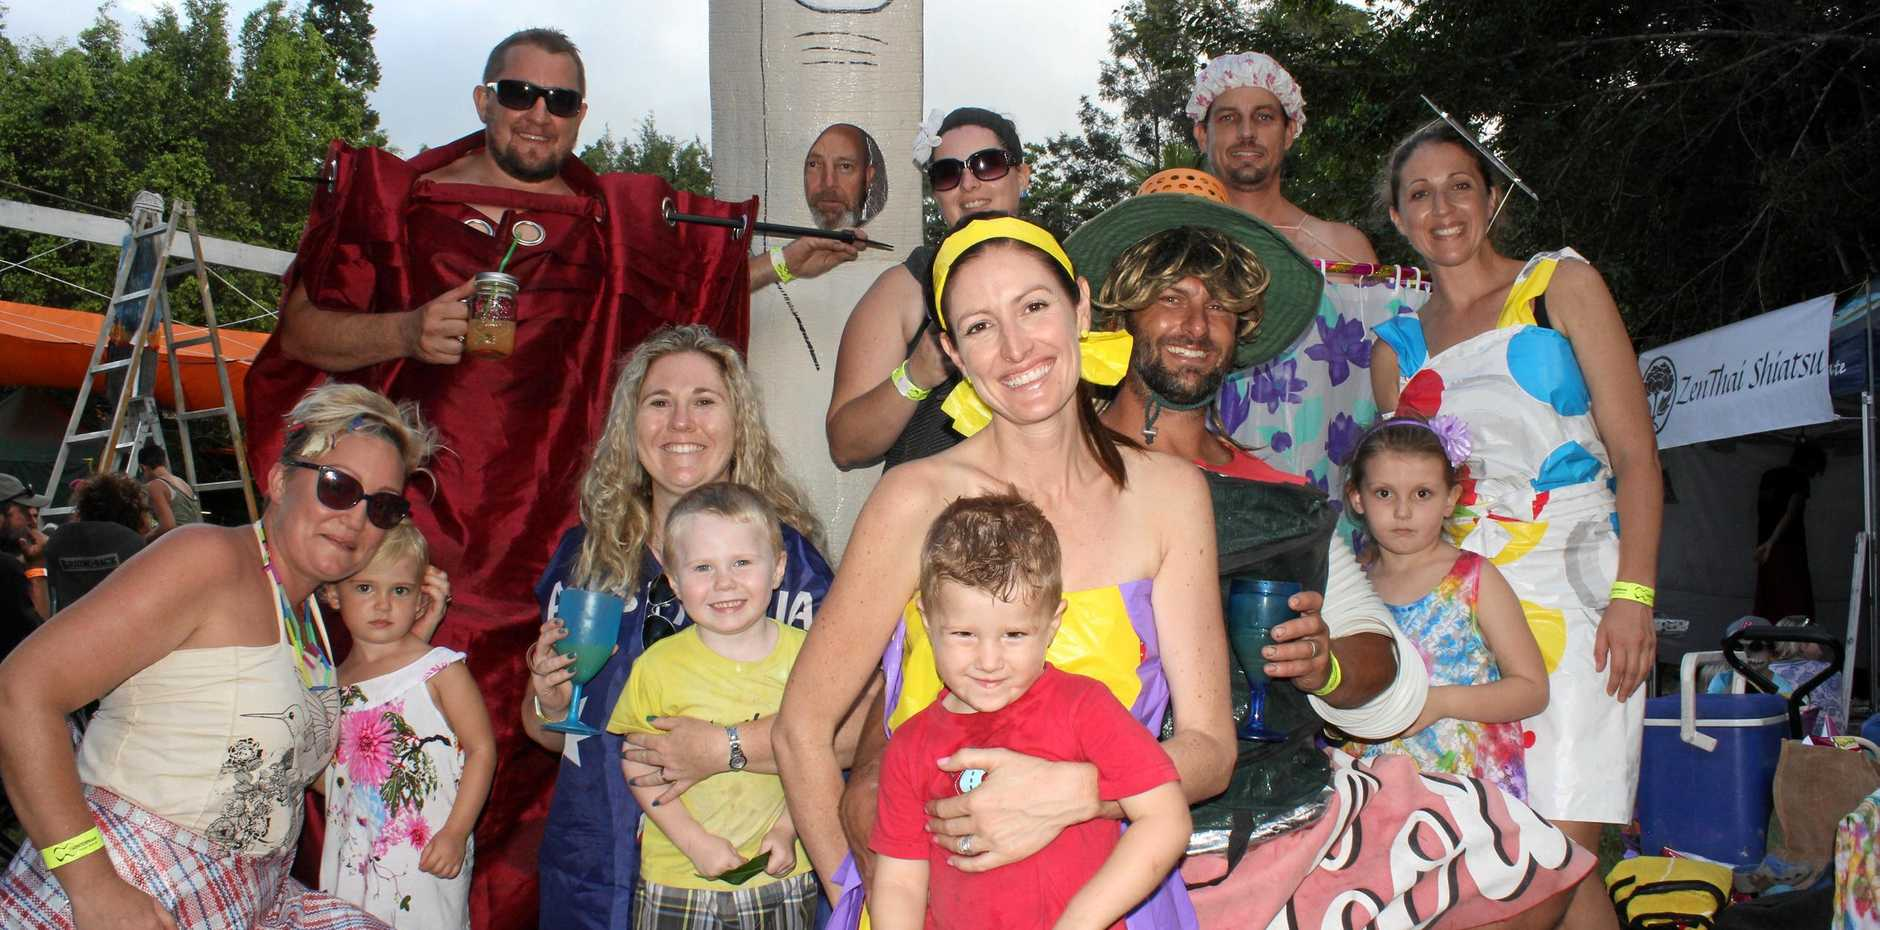 FAMILY FESTIVAL: Mel and Neave Mclaren with Chantal and Nash Burrows, Kylie Sheperd-Smith, Nate Armitage, Mark Sheperd, Sera Armitage, Charlotte Tatterson, Dean Armitage, Jim McLaren and Michelle and Brett Tatterson at last year's festival.